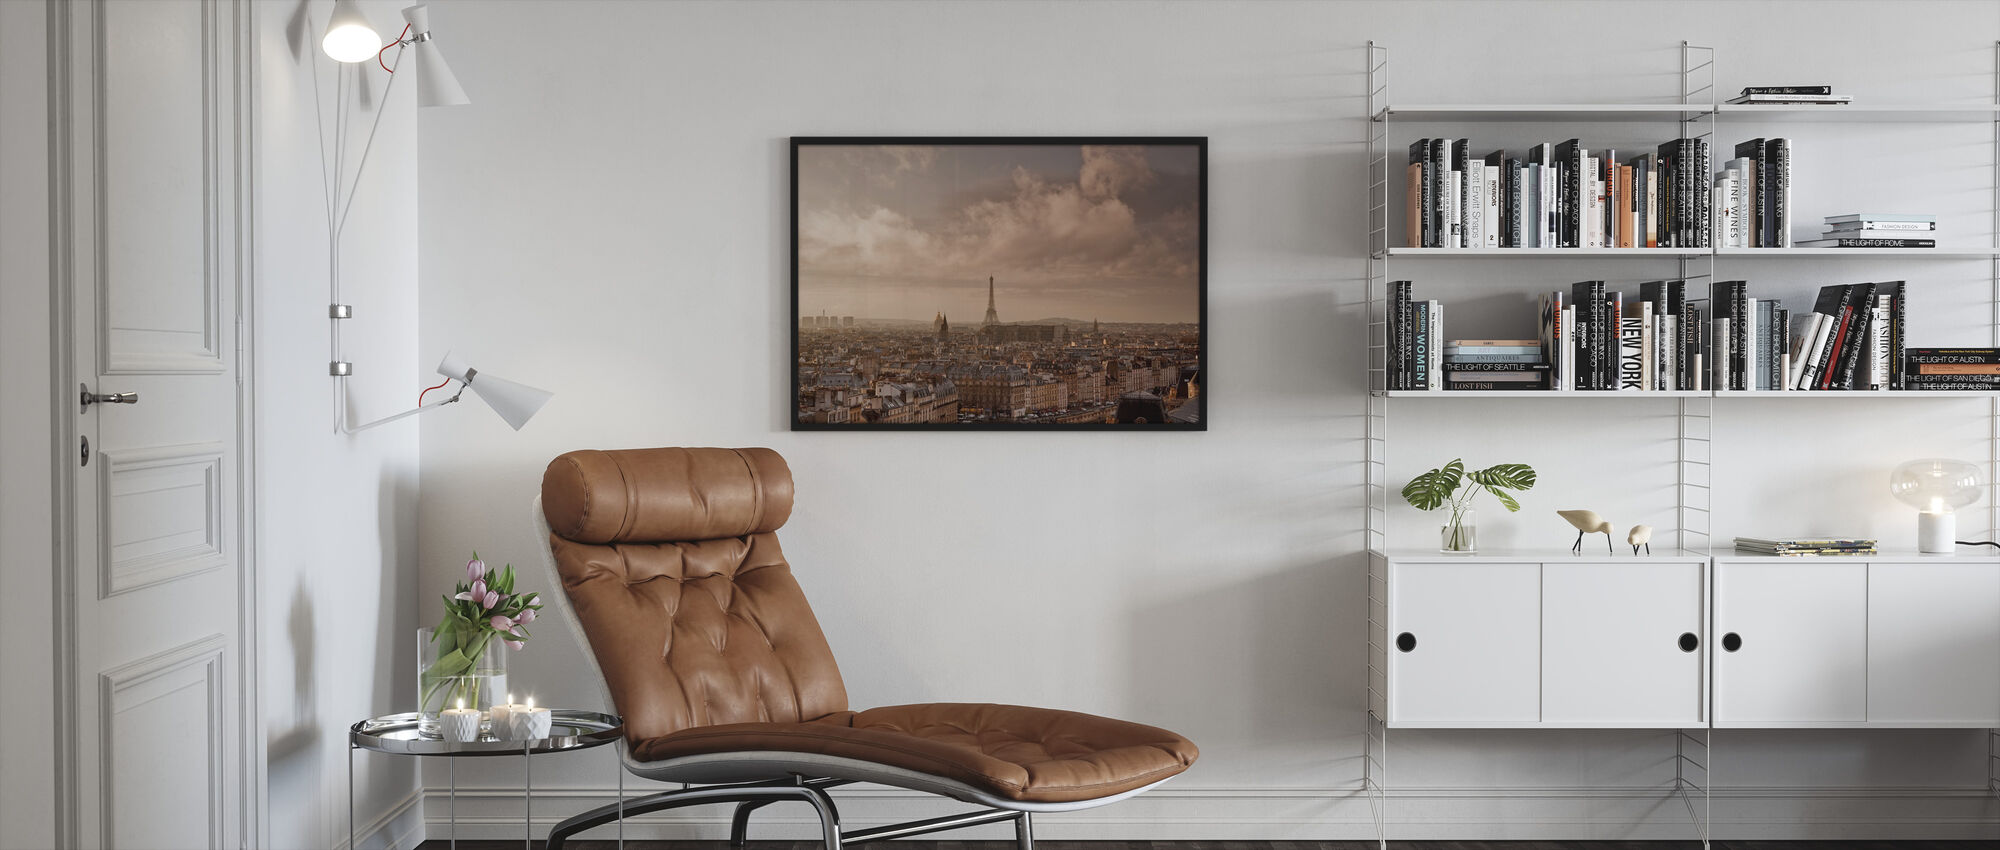 Soft Clouds Sweeping by Paris - Framed print - Living Room